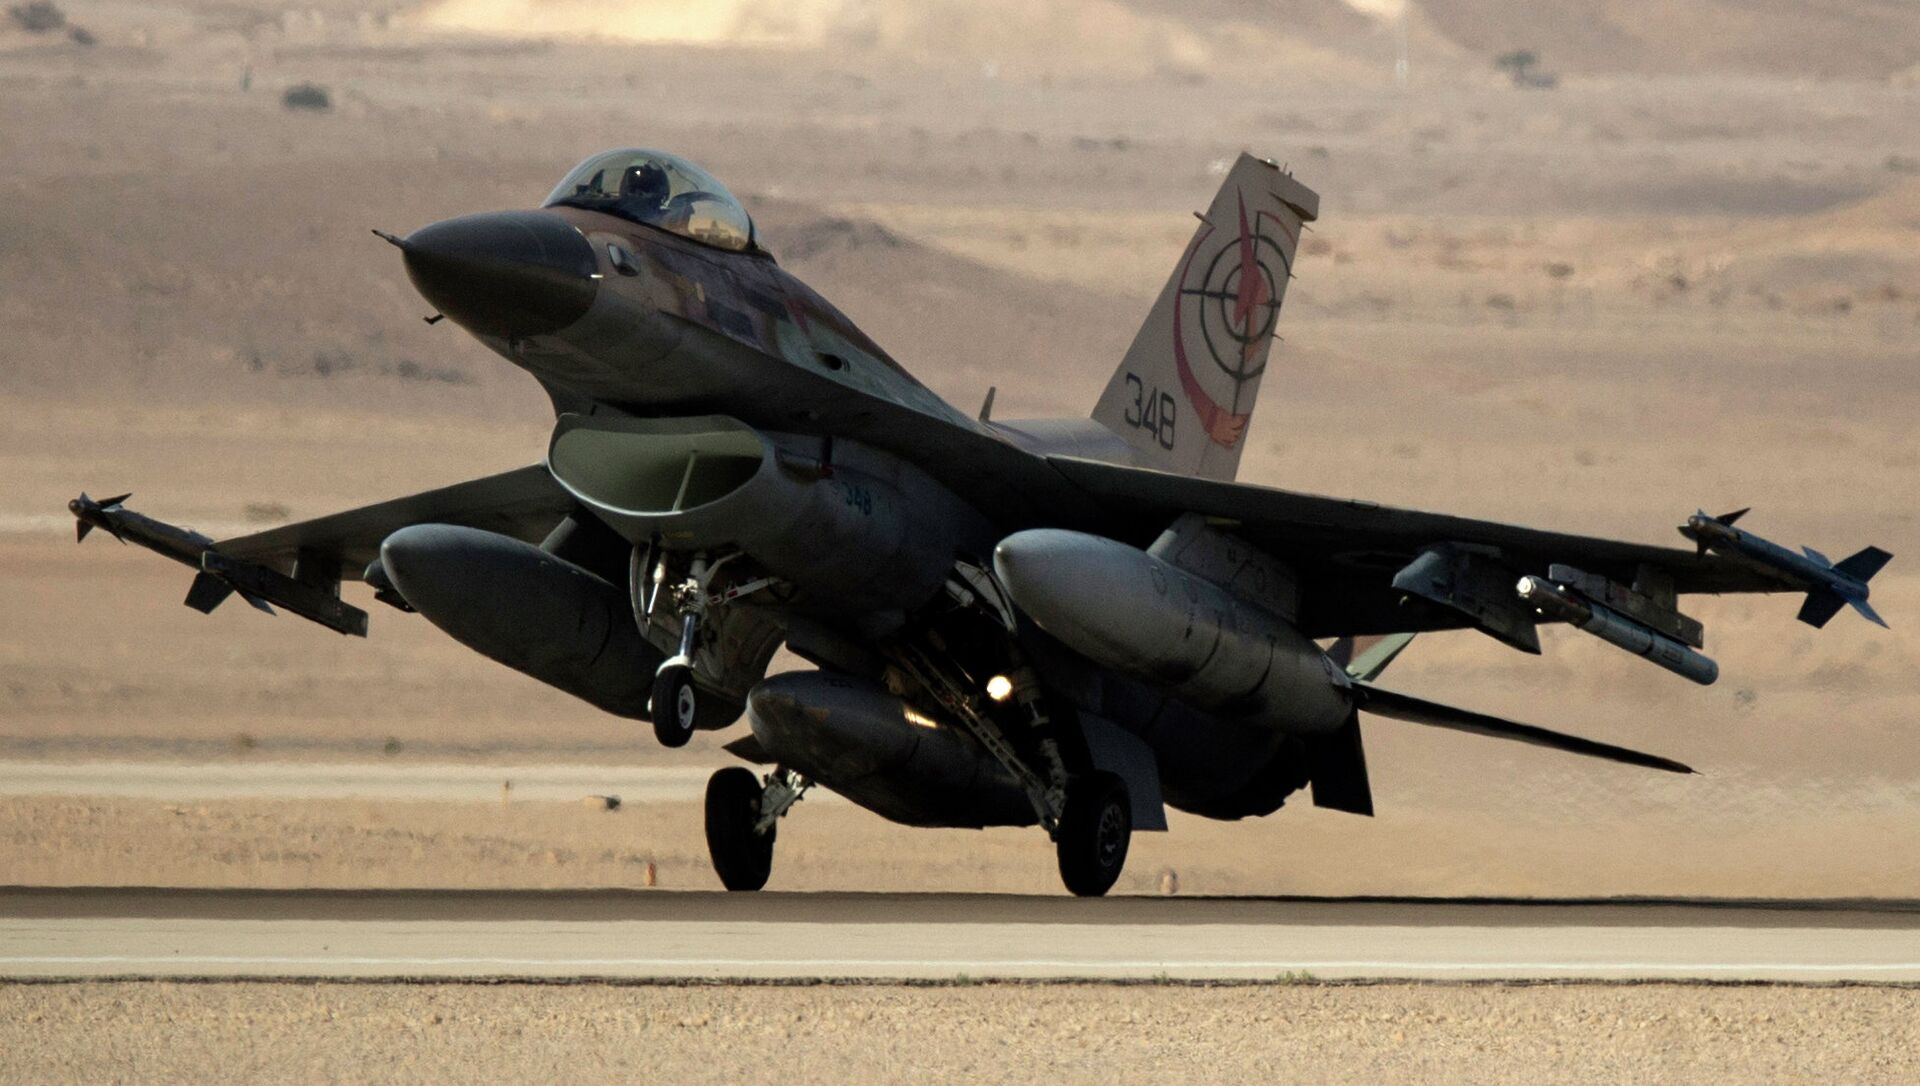 An Israeli F-16I fighter jet lands during the Blue Flag multinational air defense exercise that is organized from the Ovda air force base over the Negev Desert - Sputnik International, 1920, 20.08.2021